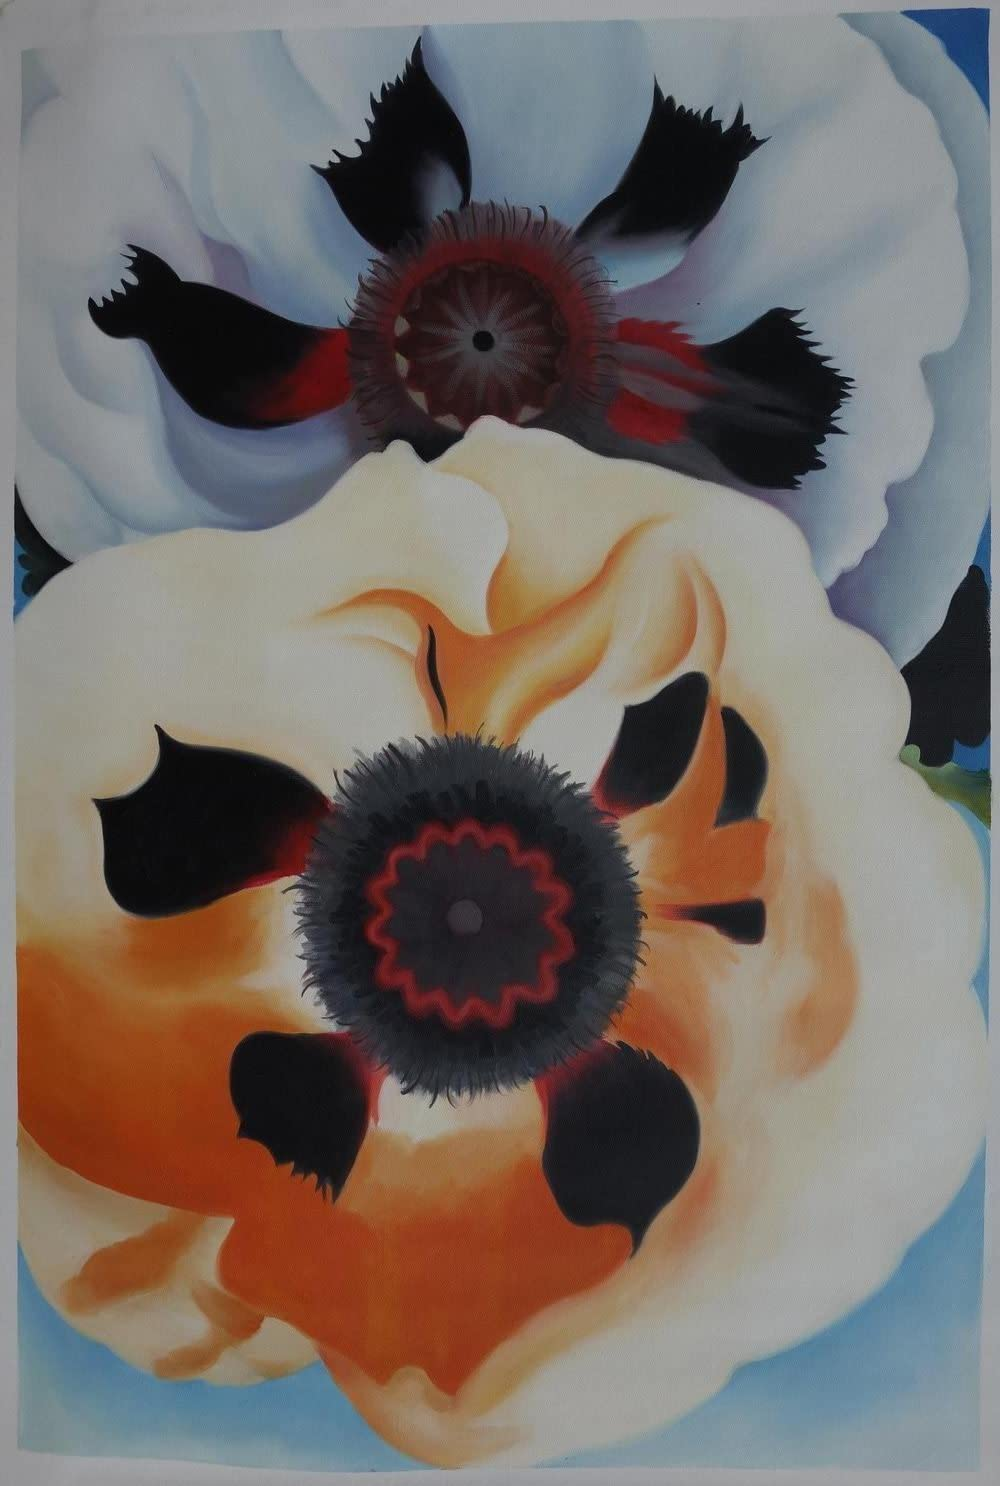 Eastpainting Hand-painted Modern art Flower Oil Painting Poppies By Georgia O keeffe Unframed Reproduction 20×24 Inches